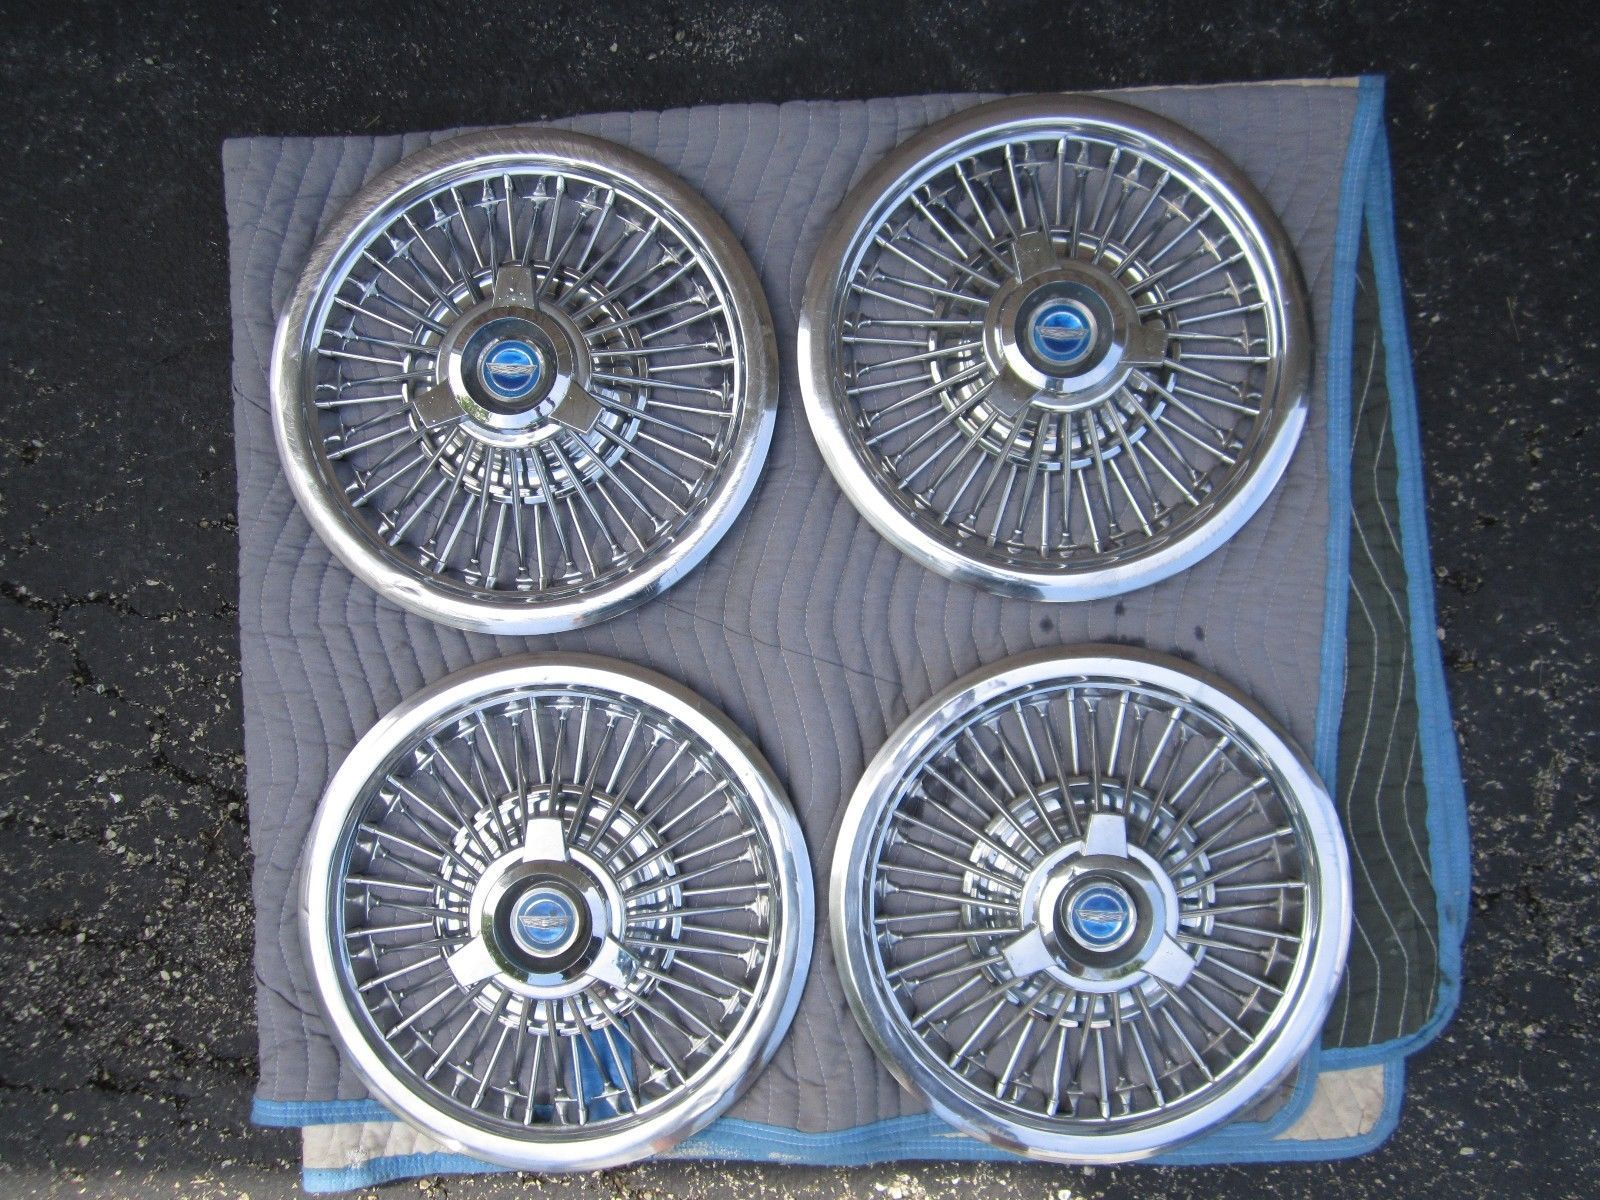 1963 ford galaxie parts ebay - 15 4 65 67 Ford Galaxie Xl Wire Wheel Covers Hub Caps Spinner Mustang Rare